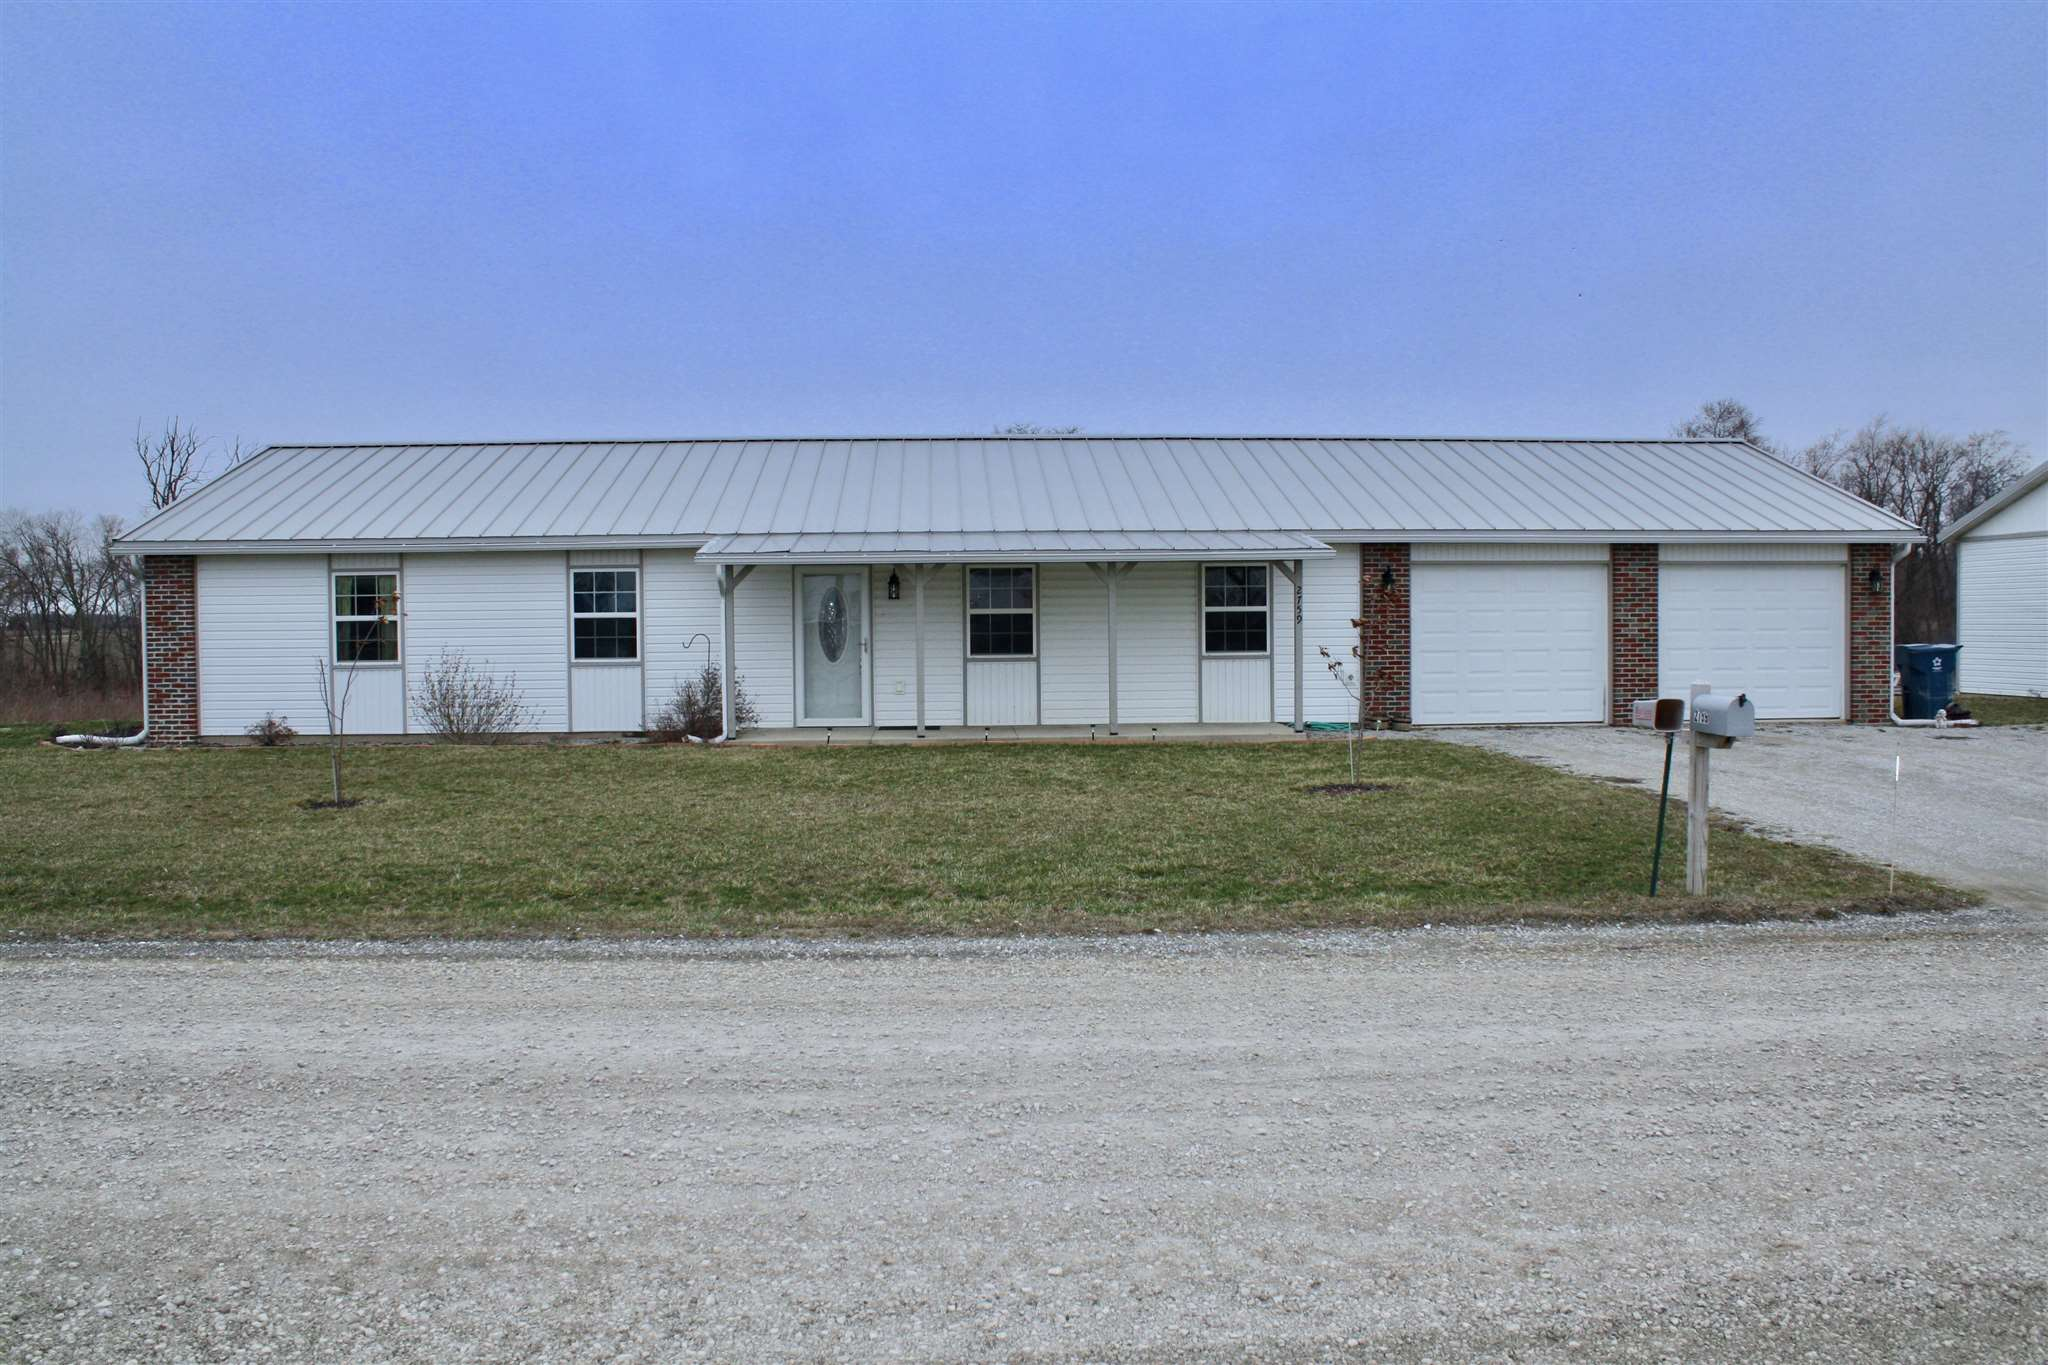 2759 W 400 N, Markle, IN 46770